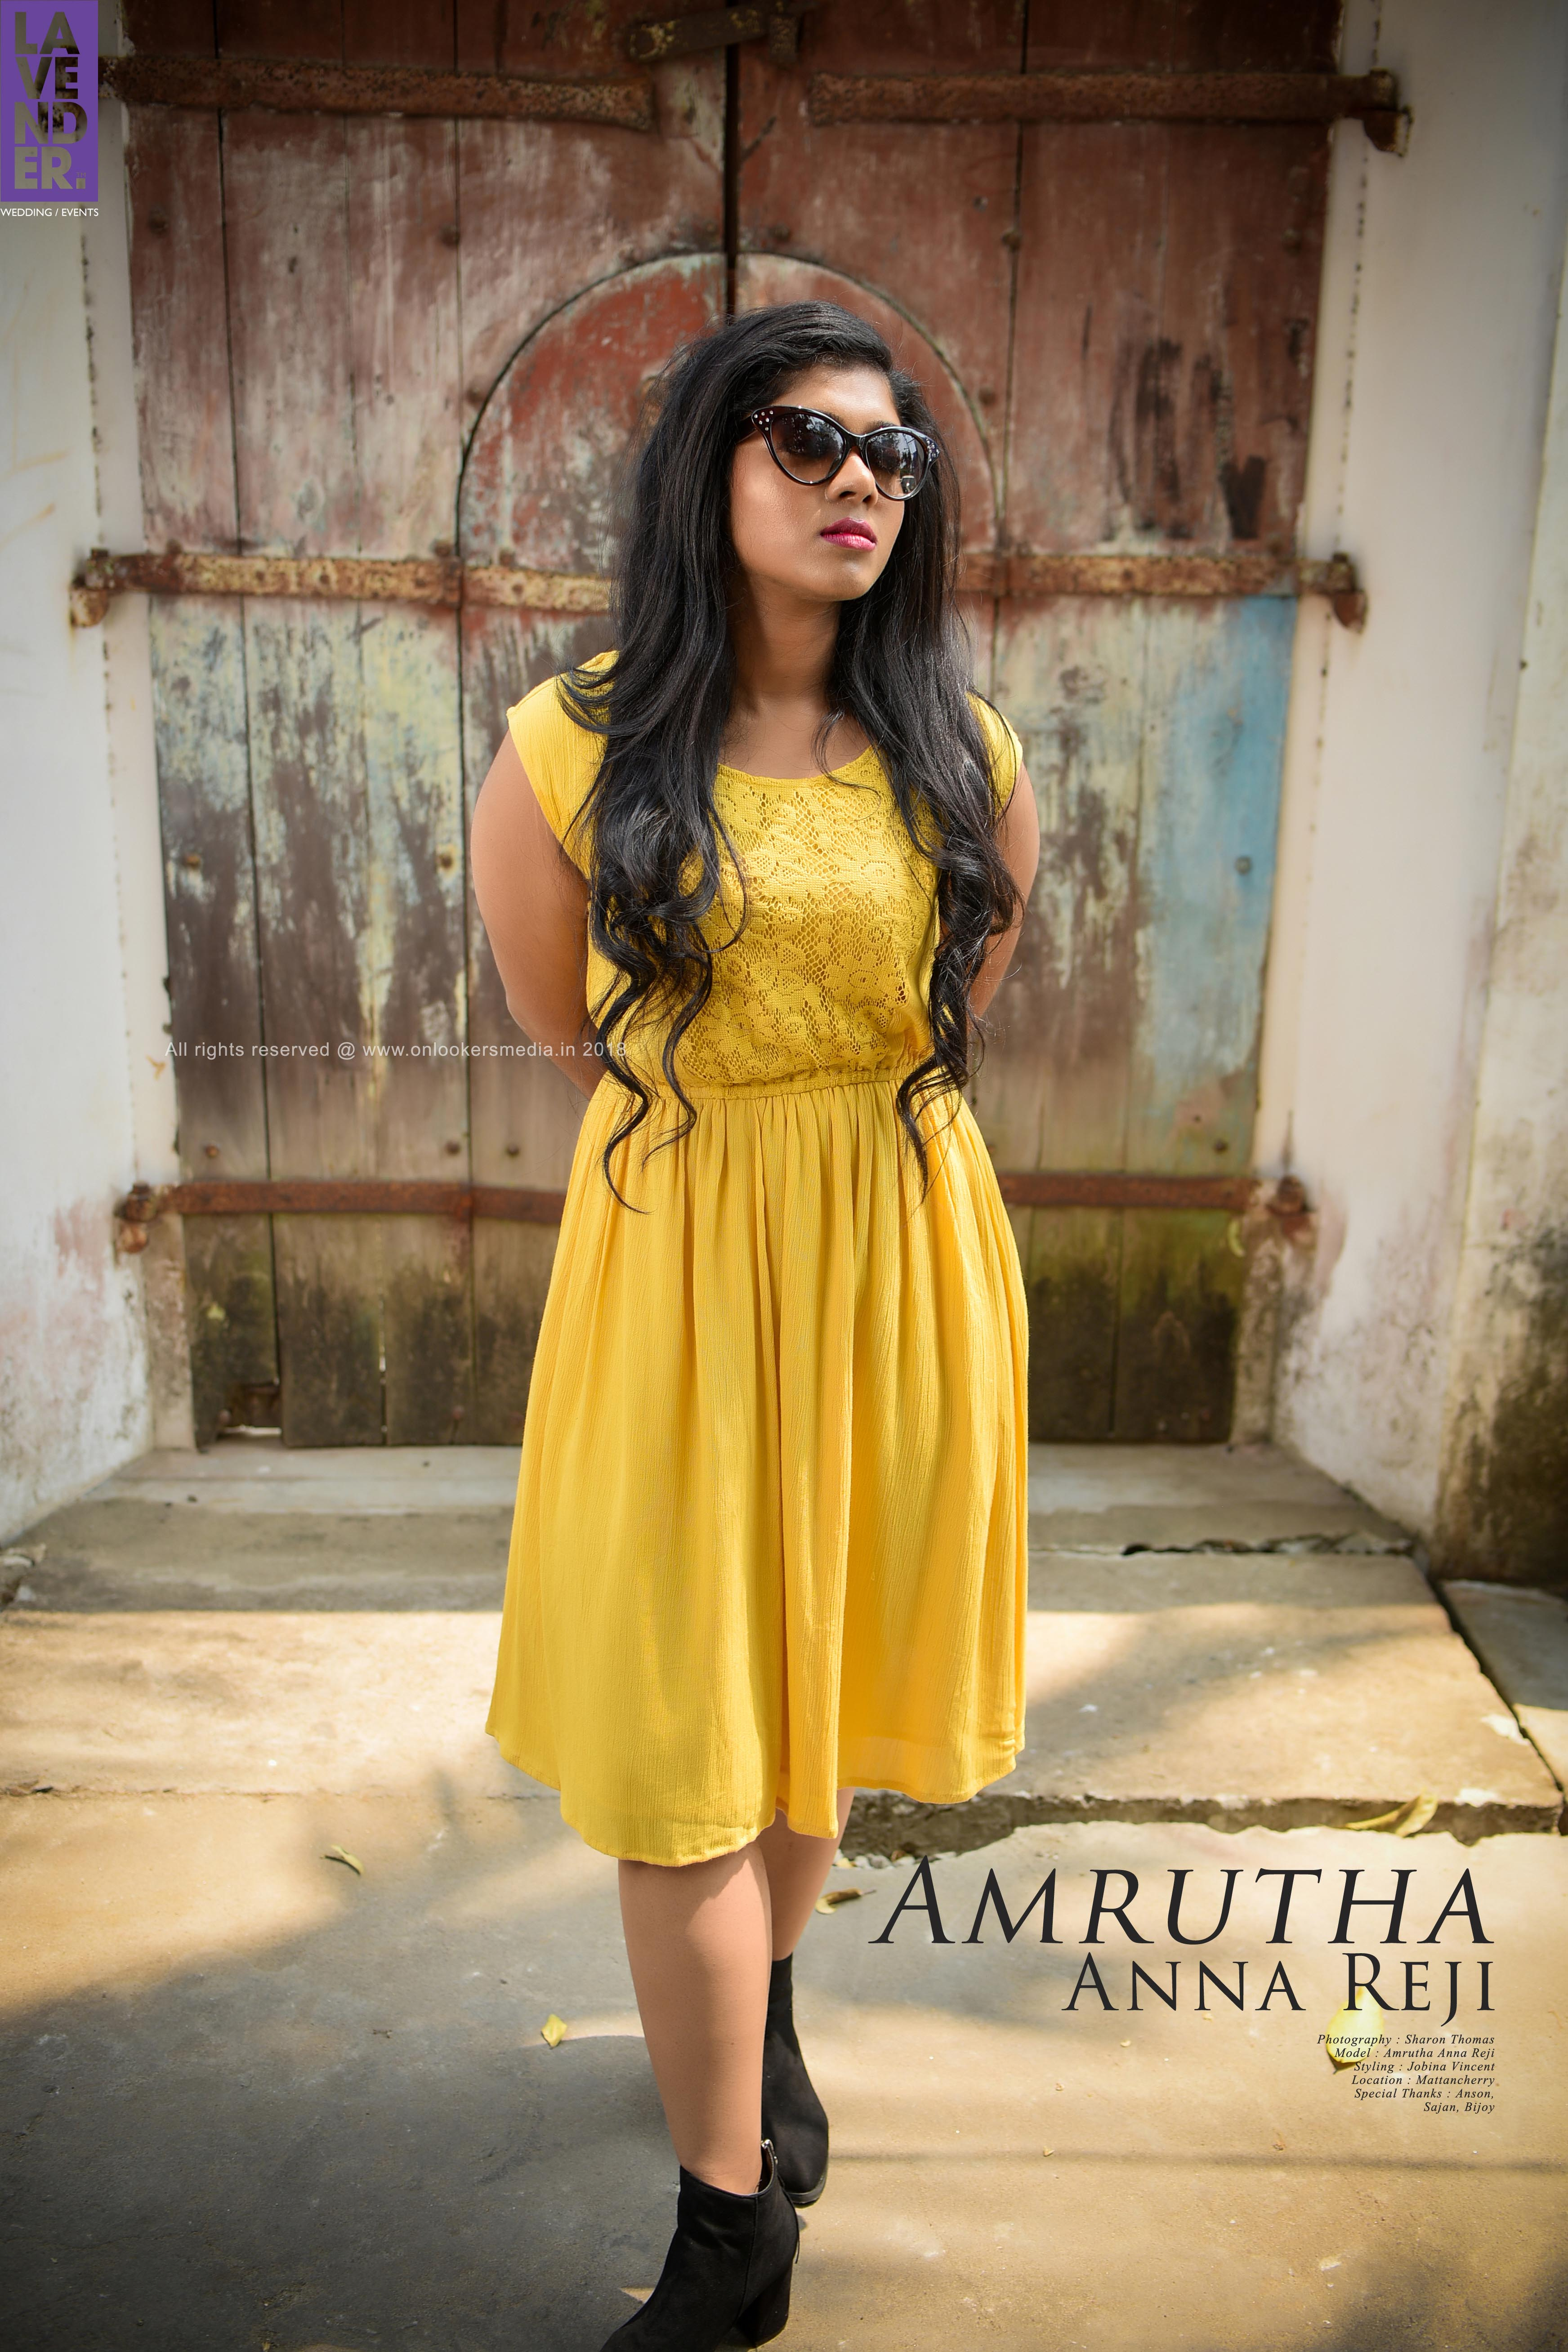 http://onlookersmedia.in/wp-content/uploads/2018/03/amrutha-anna-reji-make-over-stills-images-photos-7.jpg